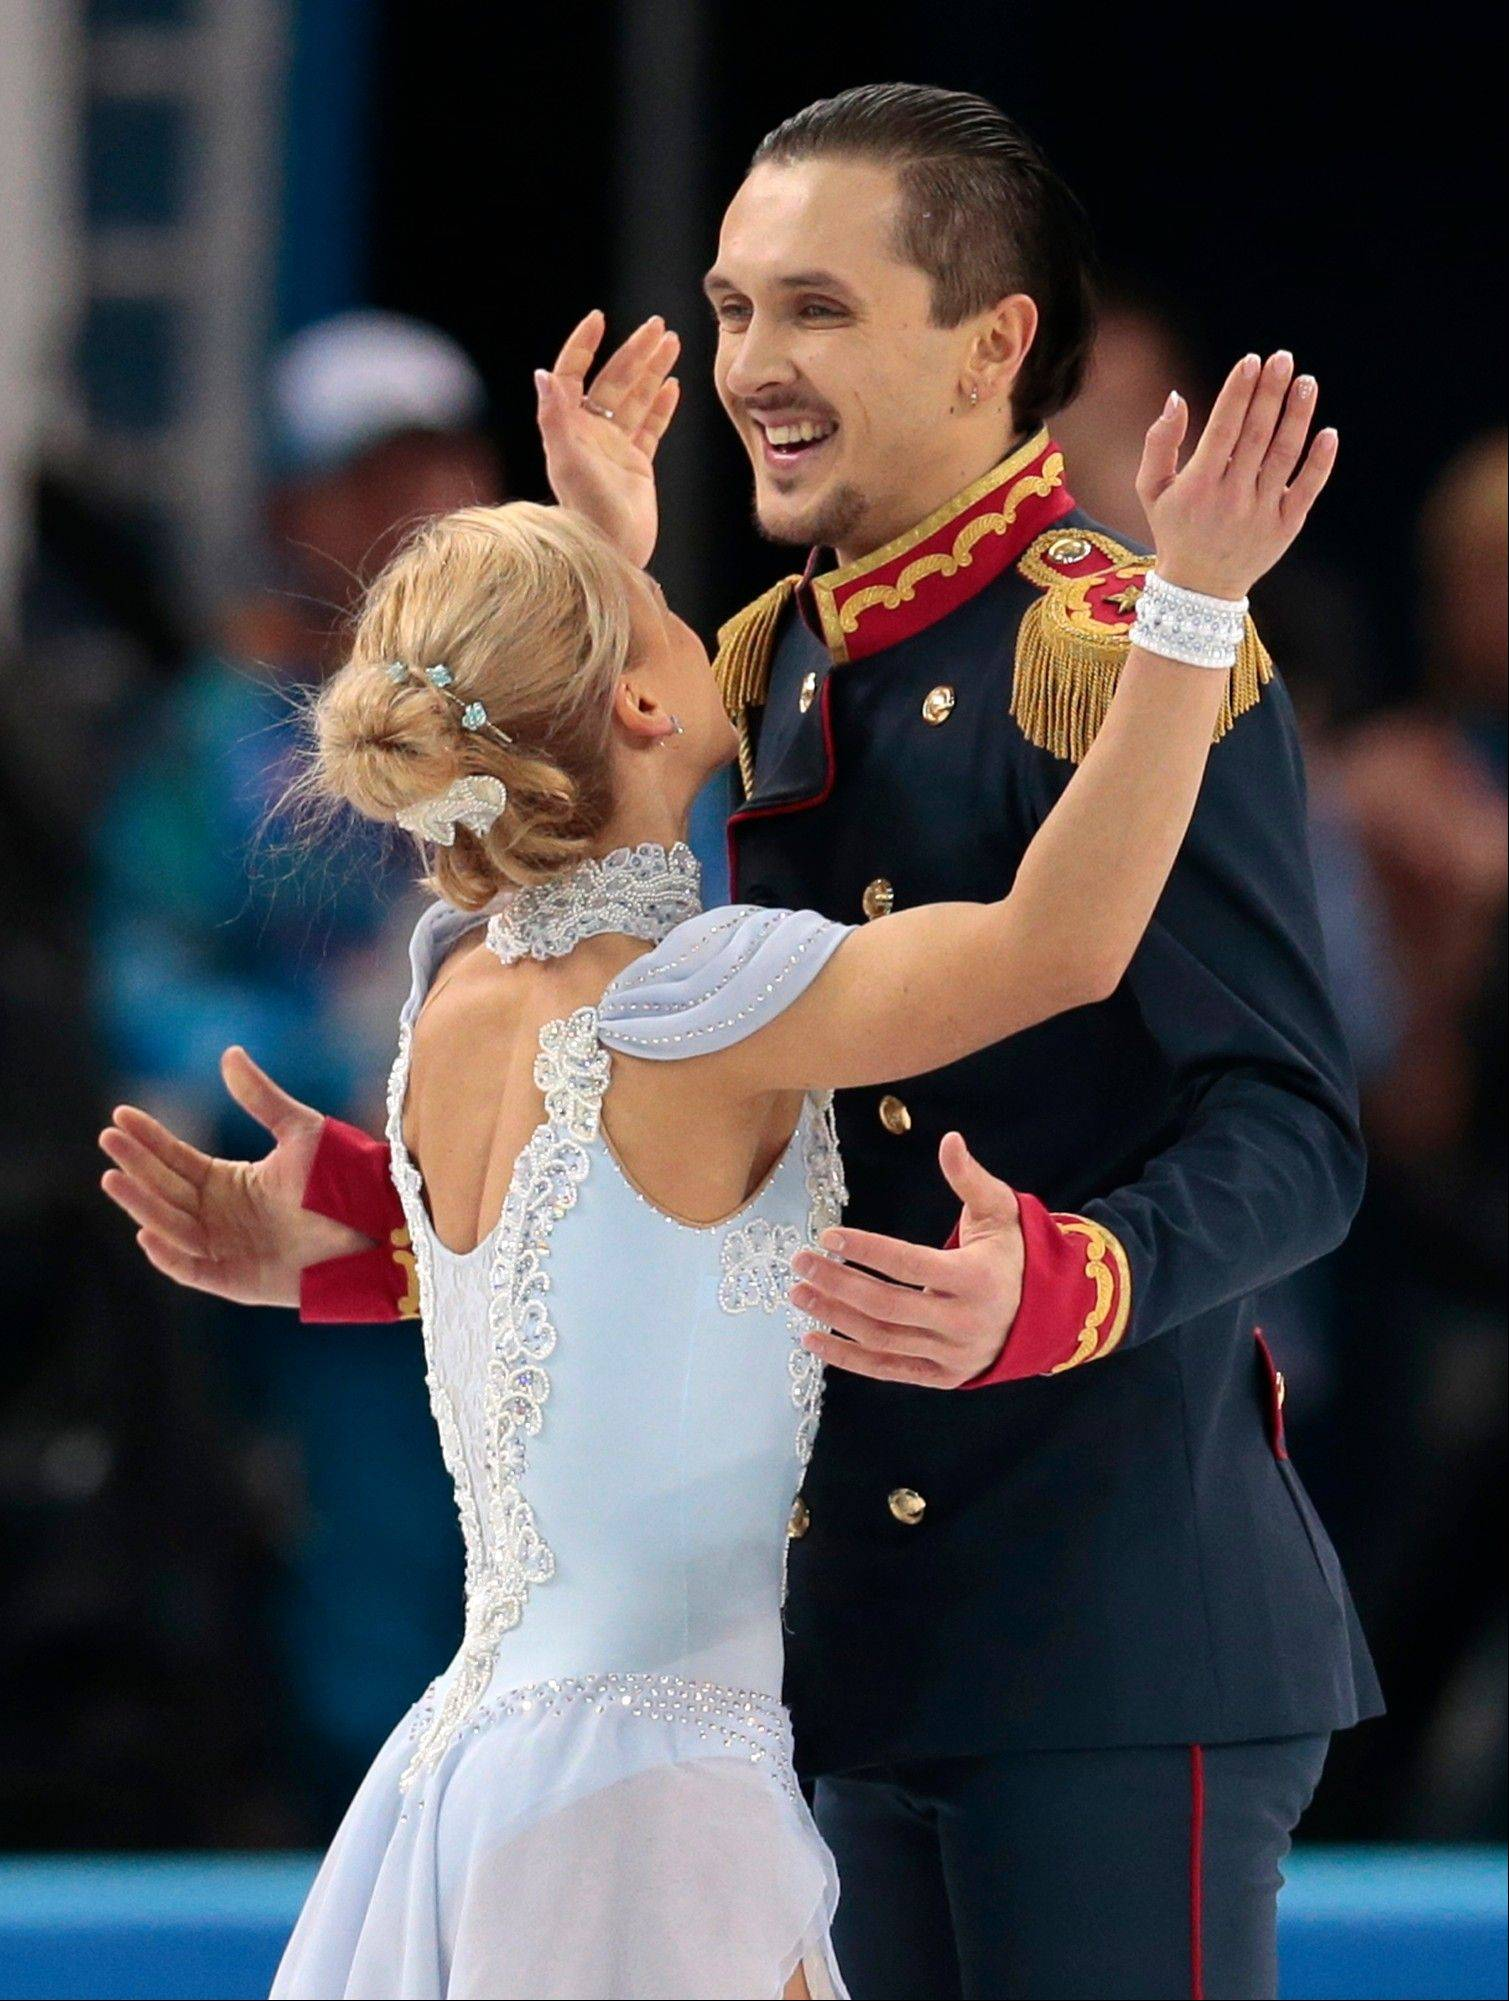 Tatiana Volosozhar and Maxim Trankov of Russia embrace after competing in the team pairs short program figure skating competition at the Iceberg Skating Palace during the 2014 Winter Olympics.